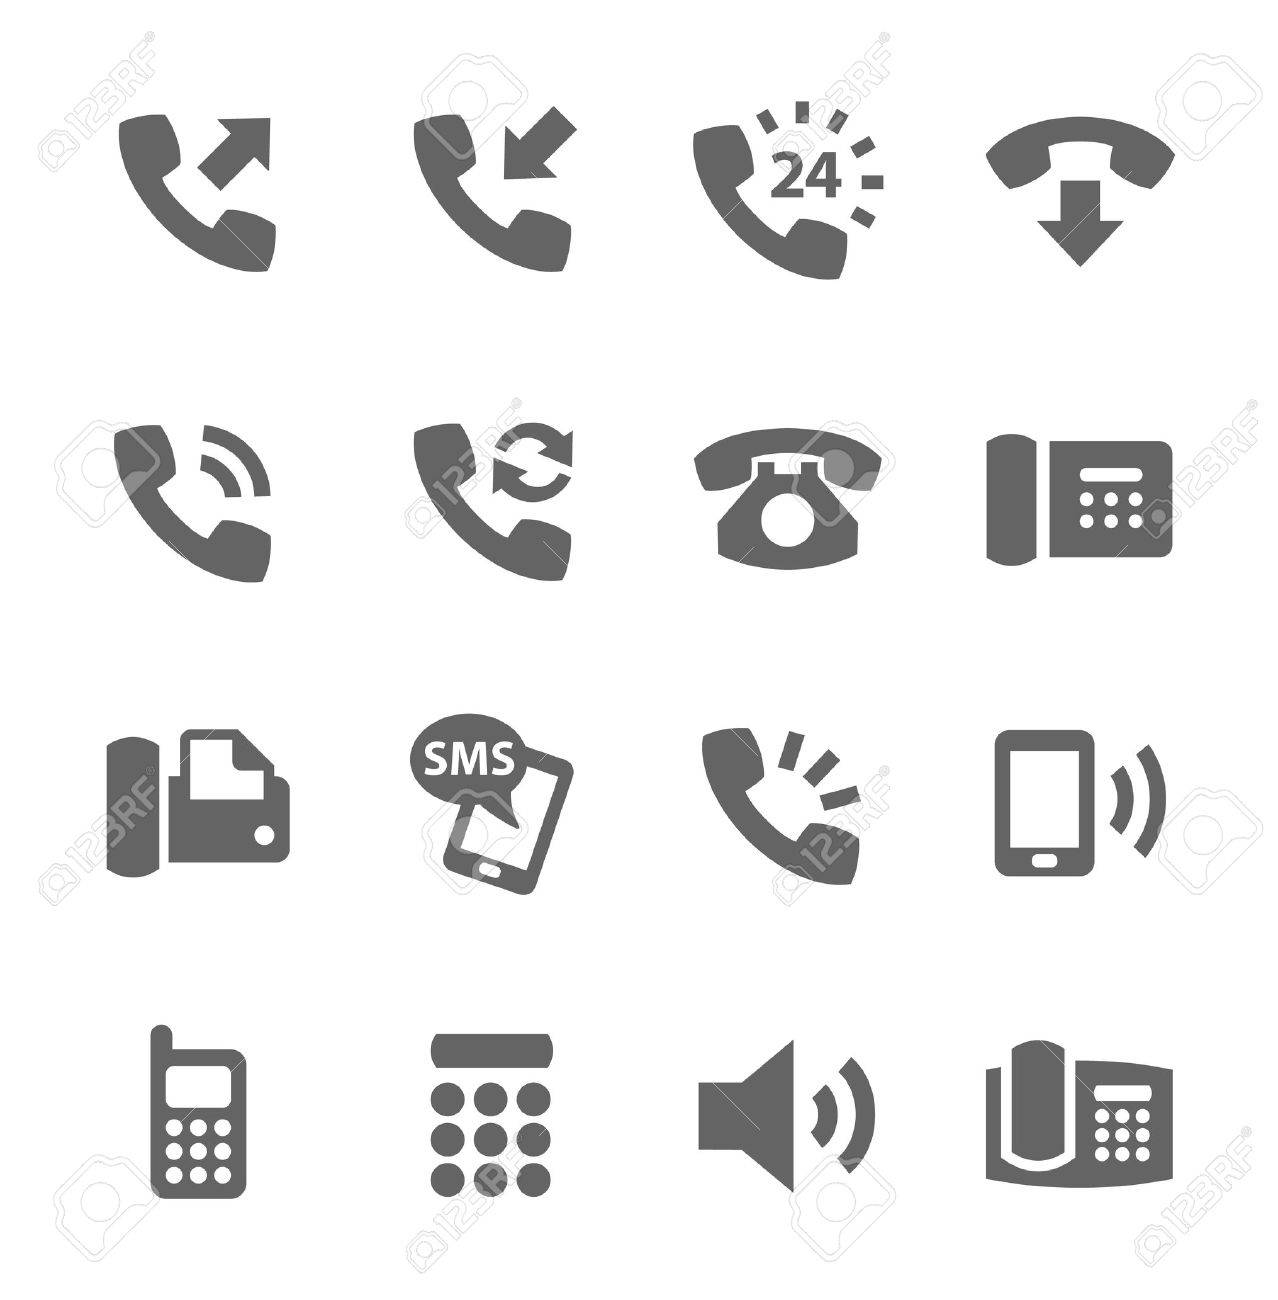 Simple set of phones related vector icons for your site or application - 26164557